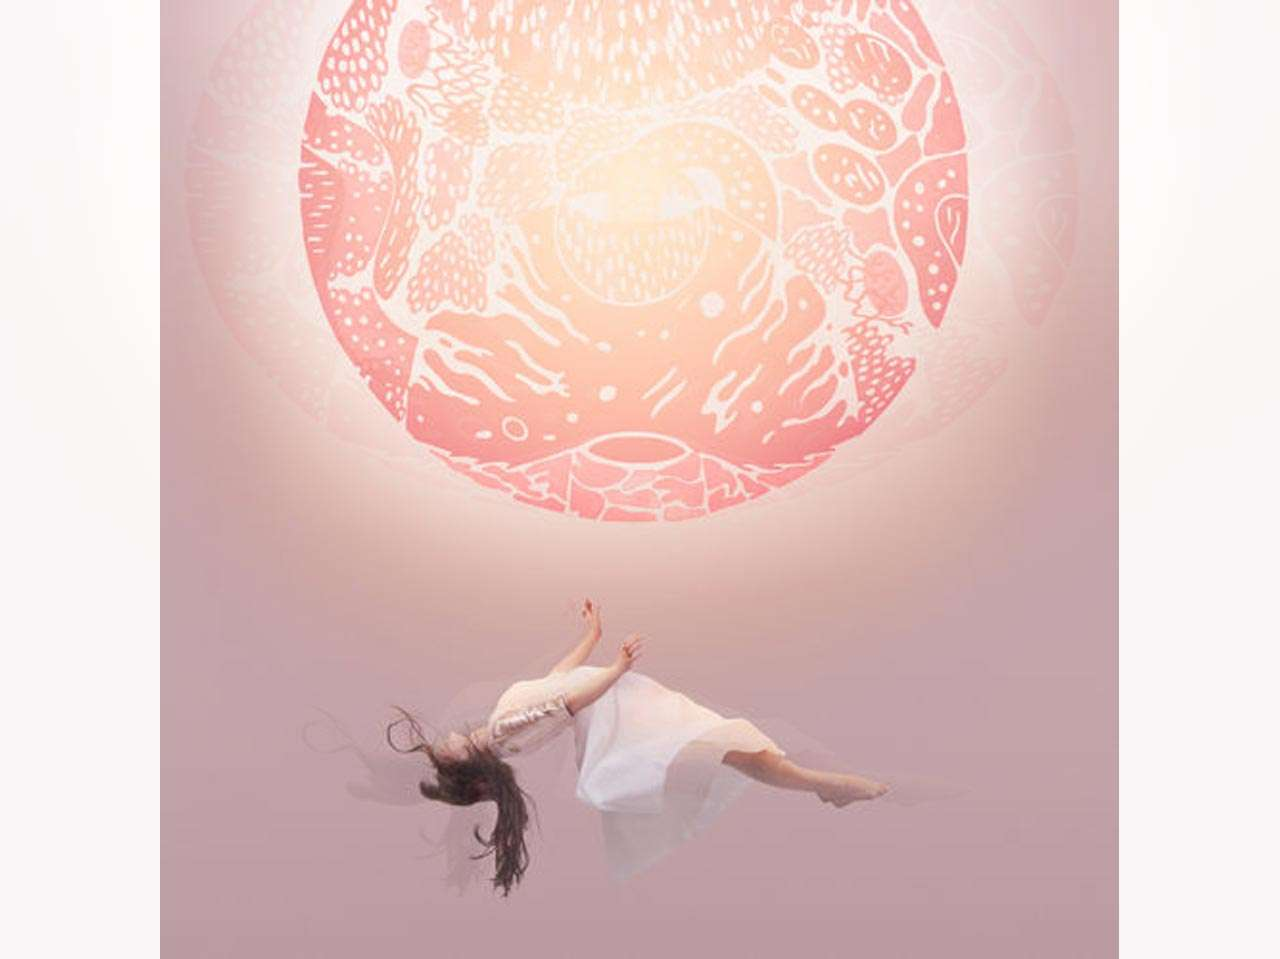 'Another Eternity', Purity Ring. Foto: 4AD Ltd